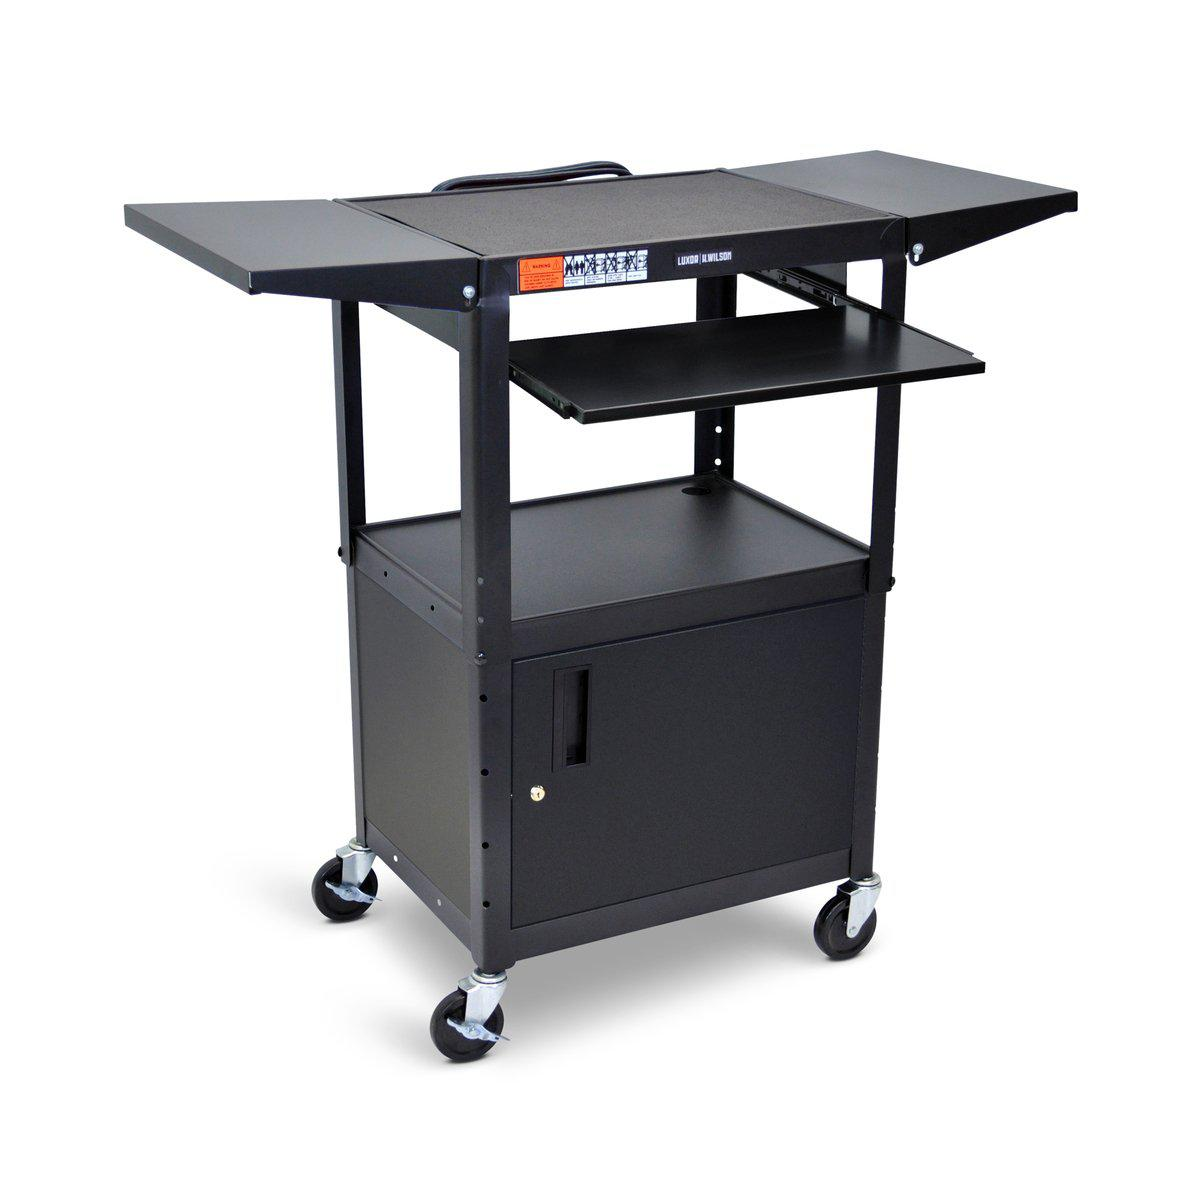 Adjustable-Height Steel AV Cart with Pullout Keyboard Tray, Cabinet and Drop Leaf Shelves